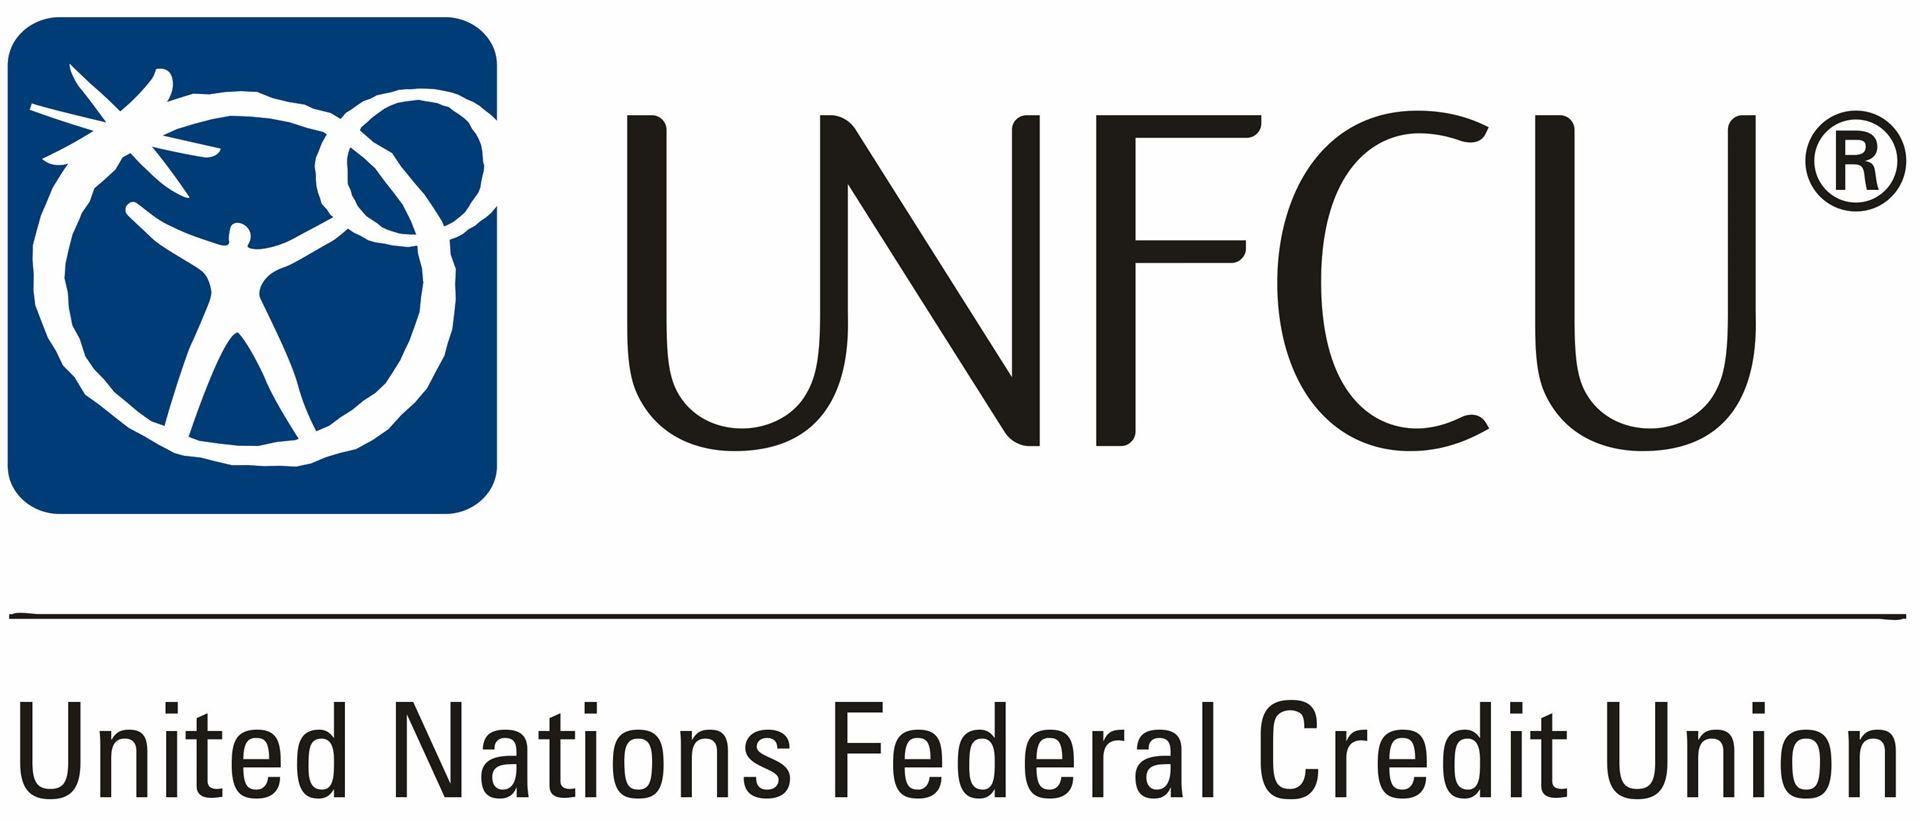 United Nations Federal Credit Union (UNFCU) Foundation Grants 2019 (Up to $50,000)